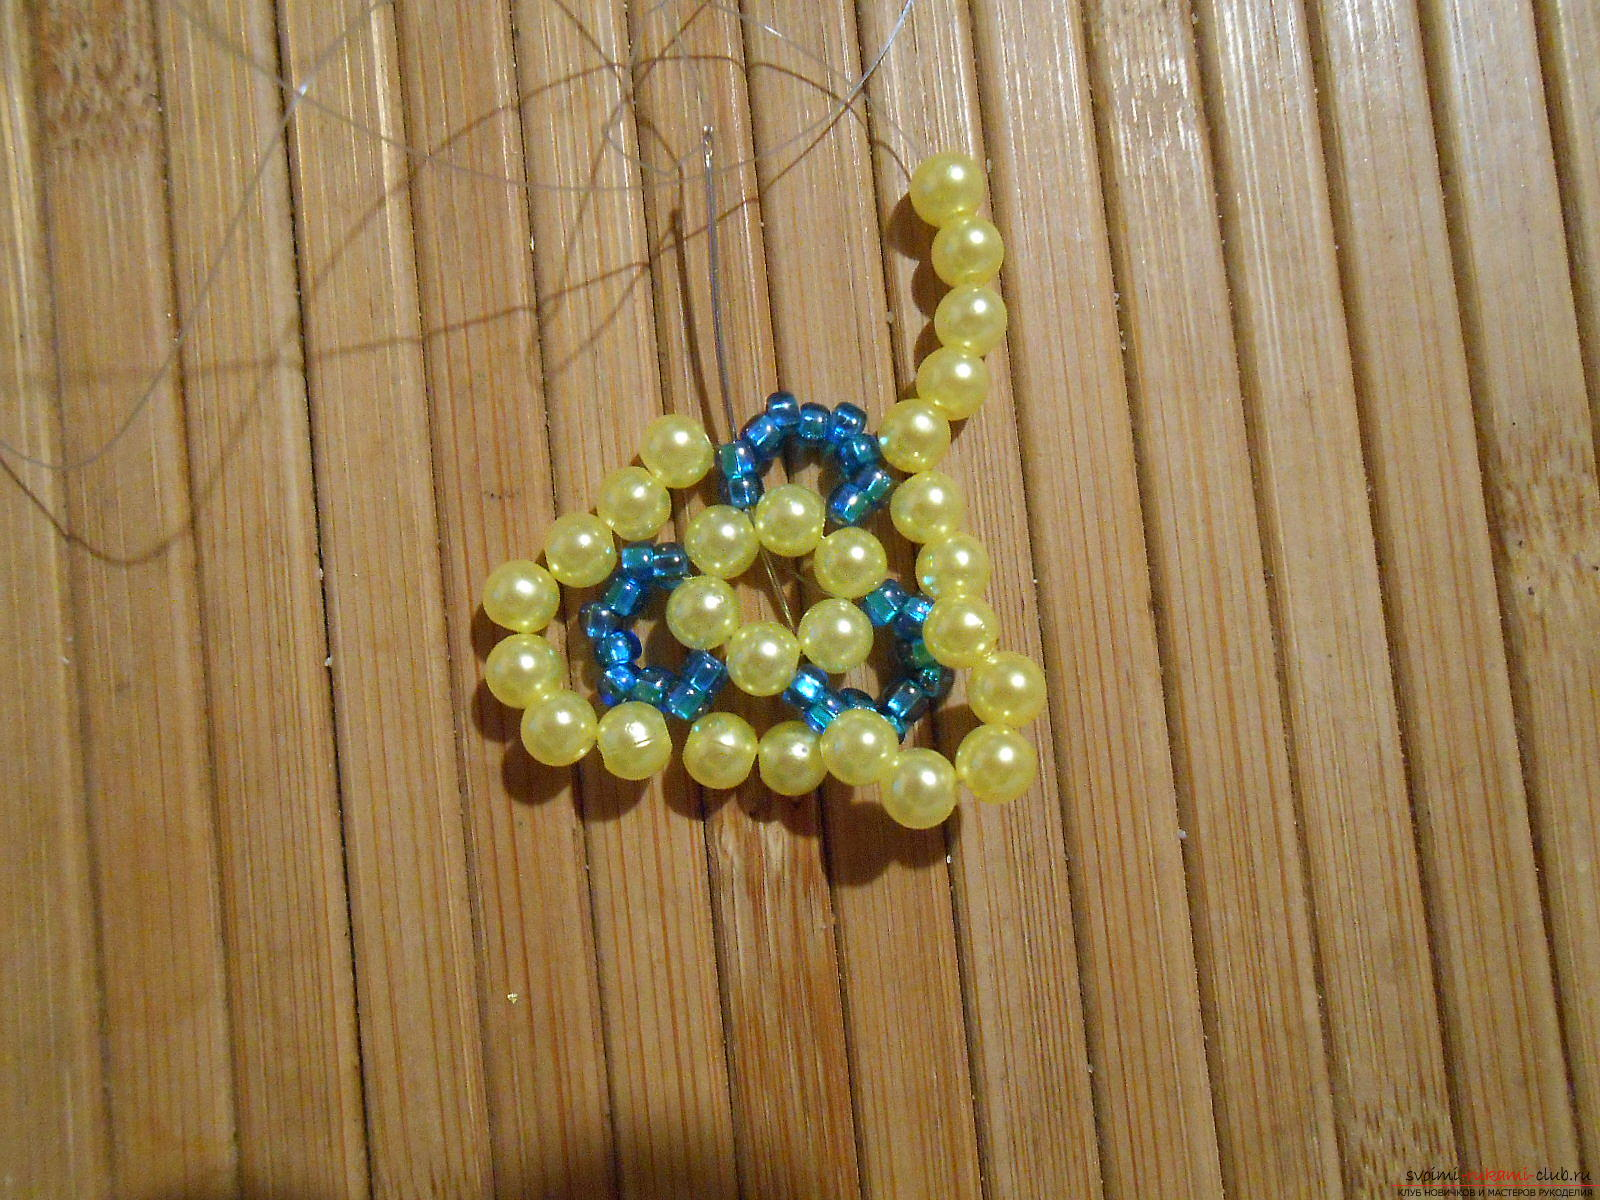 This master class of weaving from beads will tell you how to weave the earrings yourself. Photo # 12